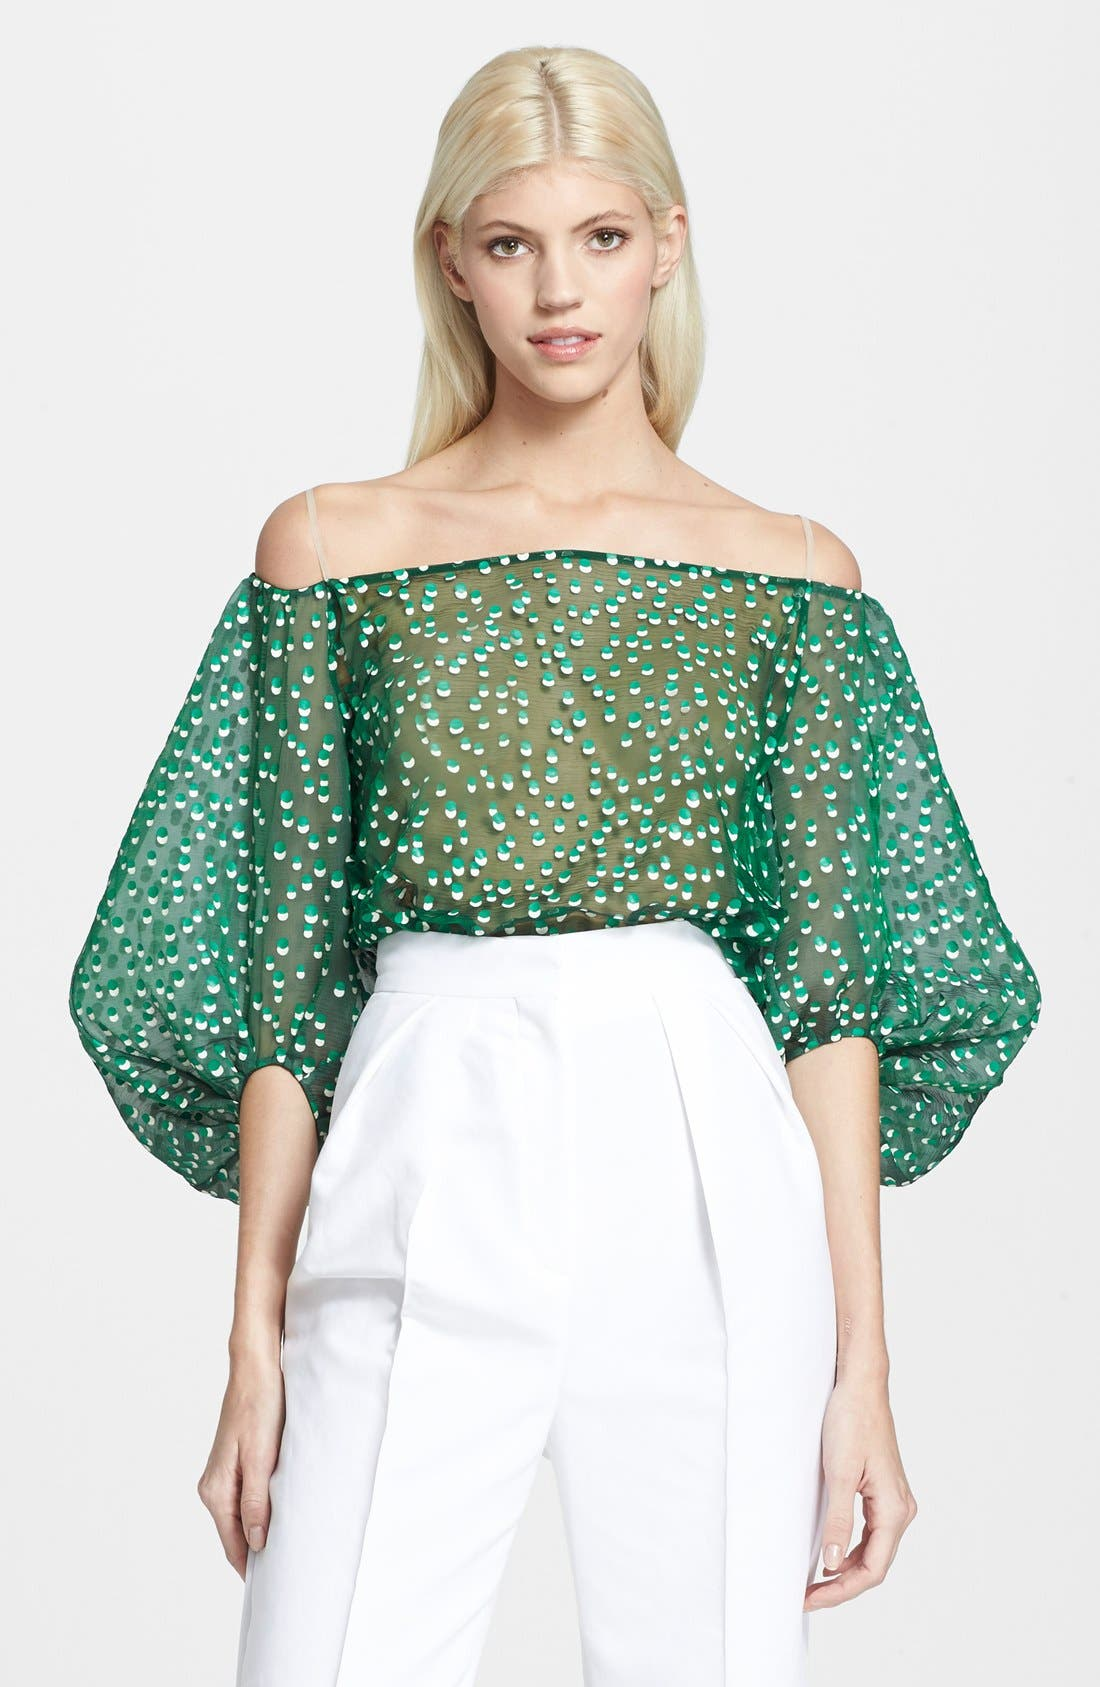 Alternate Image 1 Selected - Vika Gazinskaya Polka Dot Off the Shoulder Décolletage Blouse